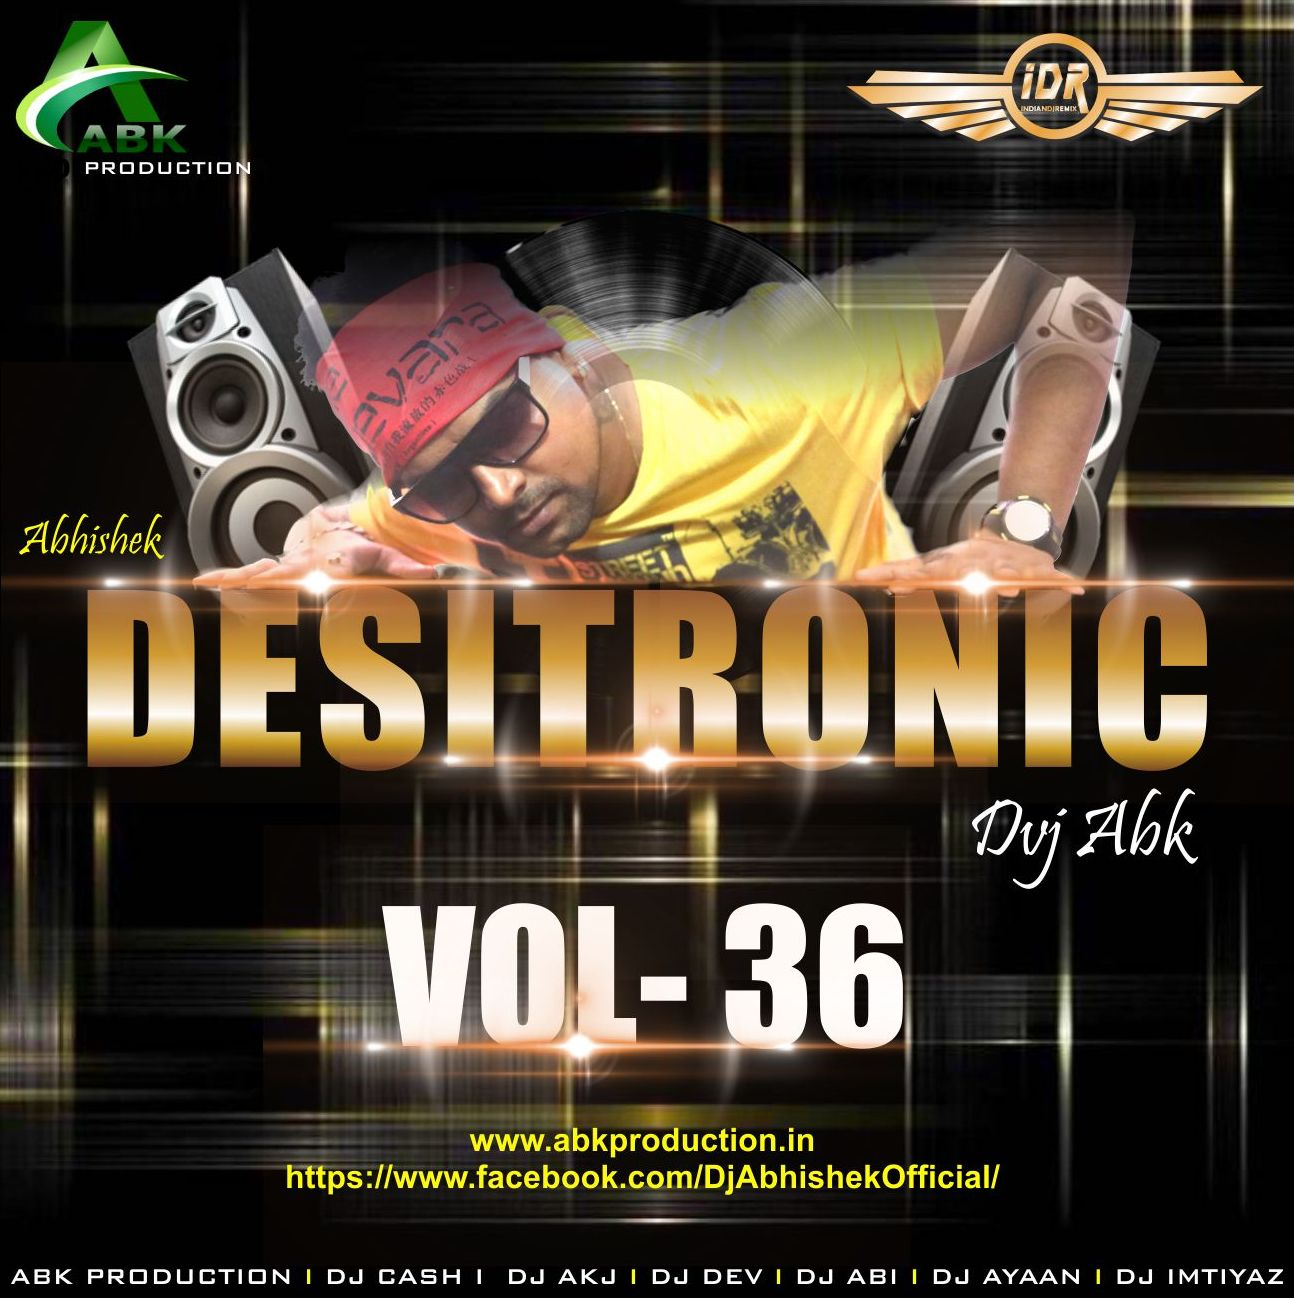 Manma Emotion Jaage Re Mp3 Full Song Download: Desitronic Vol.36 [Abk Production] DJ Abhishek